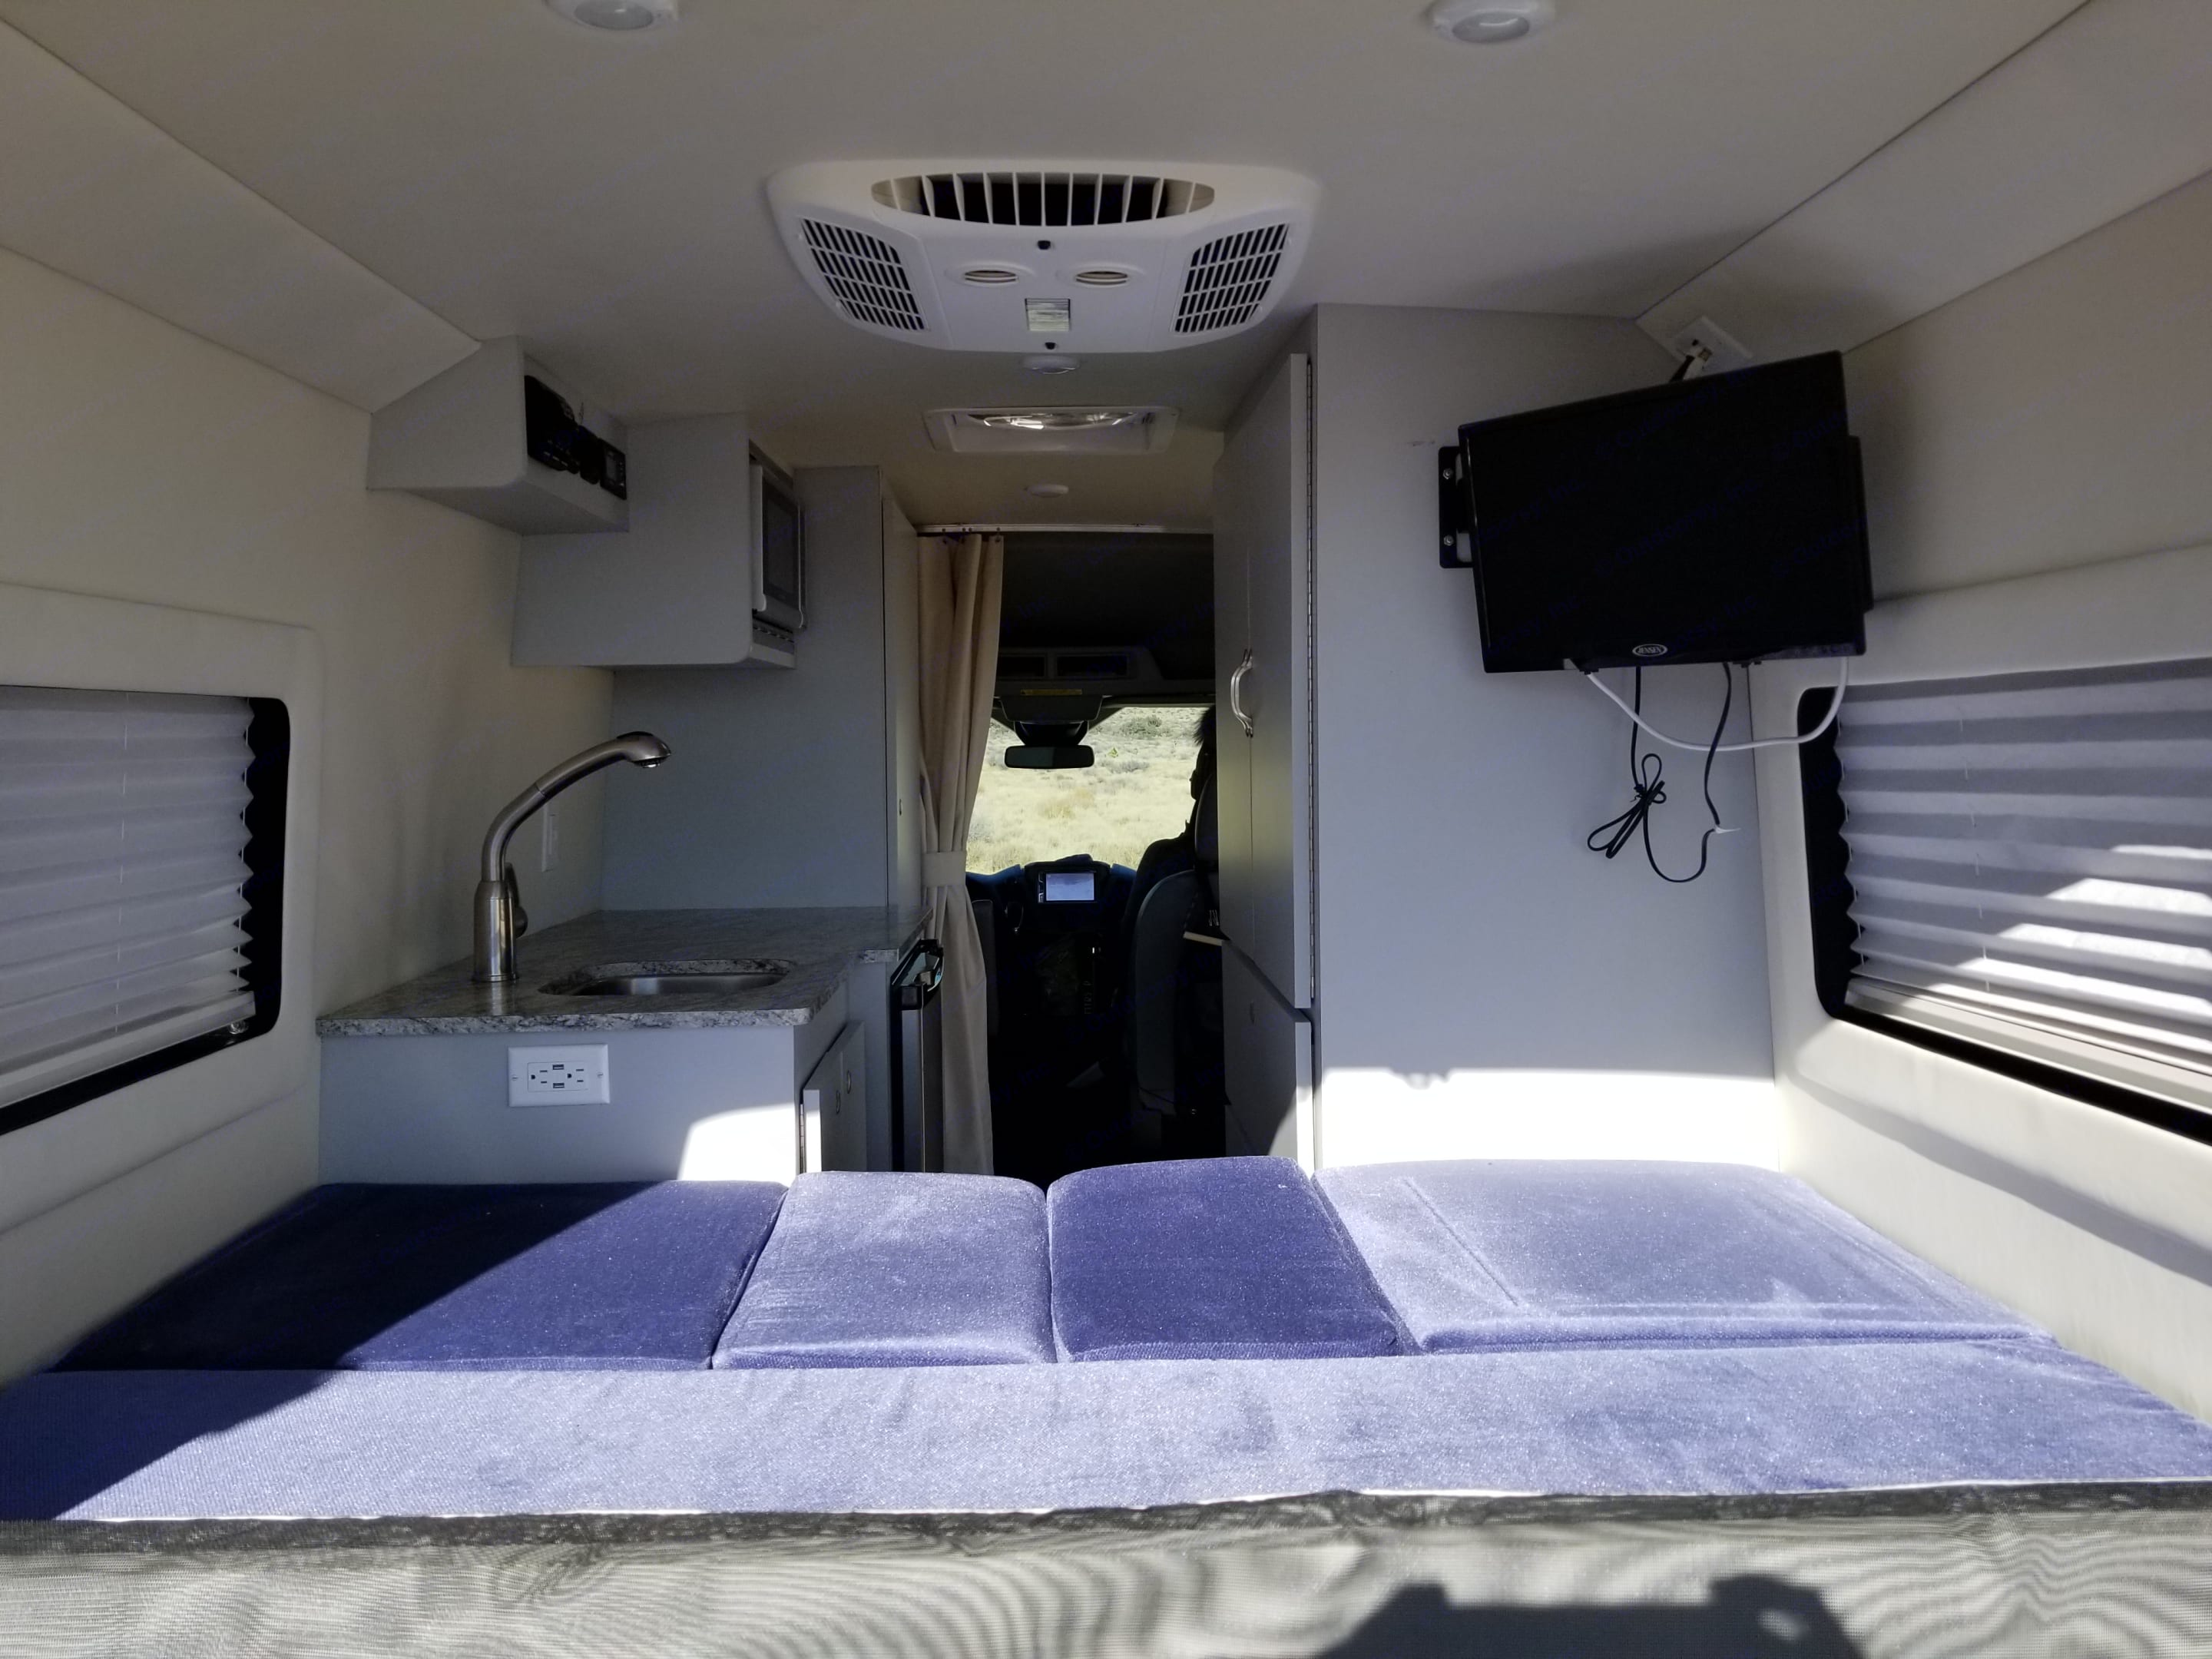 Convert the couch/dinette into a bed within a minute. Ford Transit 2018